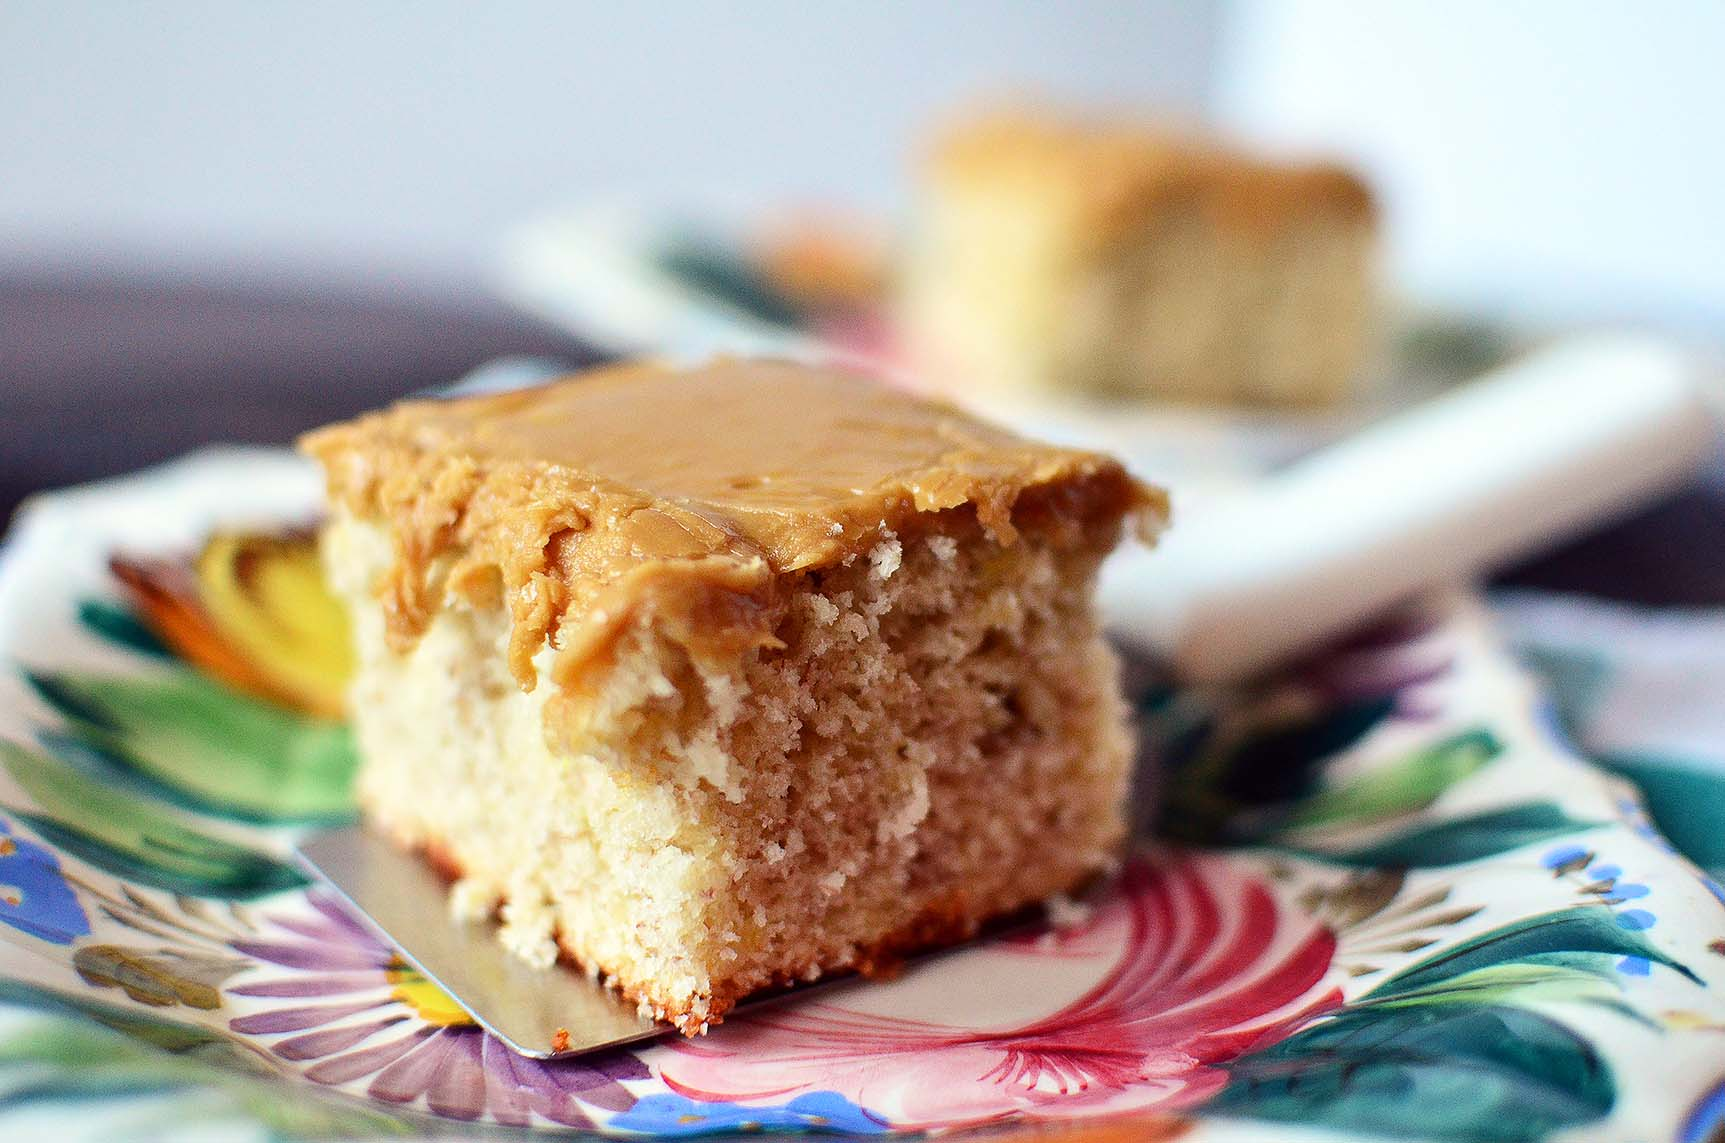 Banana Cake with Caramel Frosting - Simple, Sweet & Savory